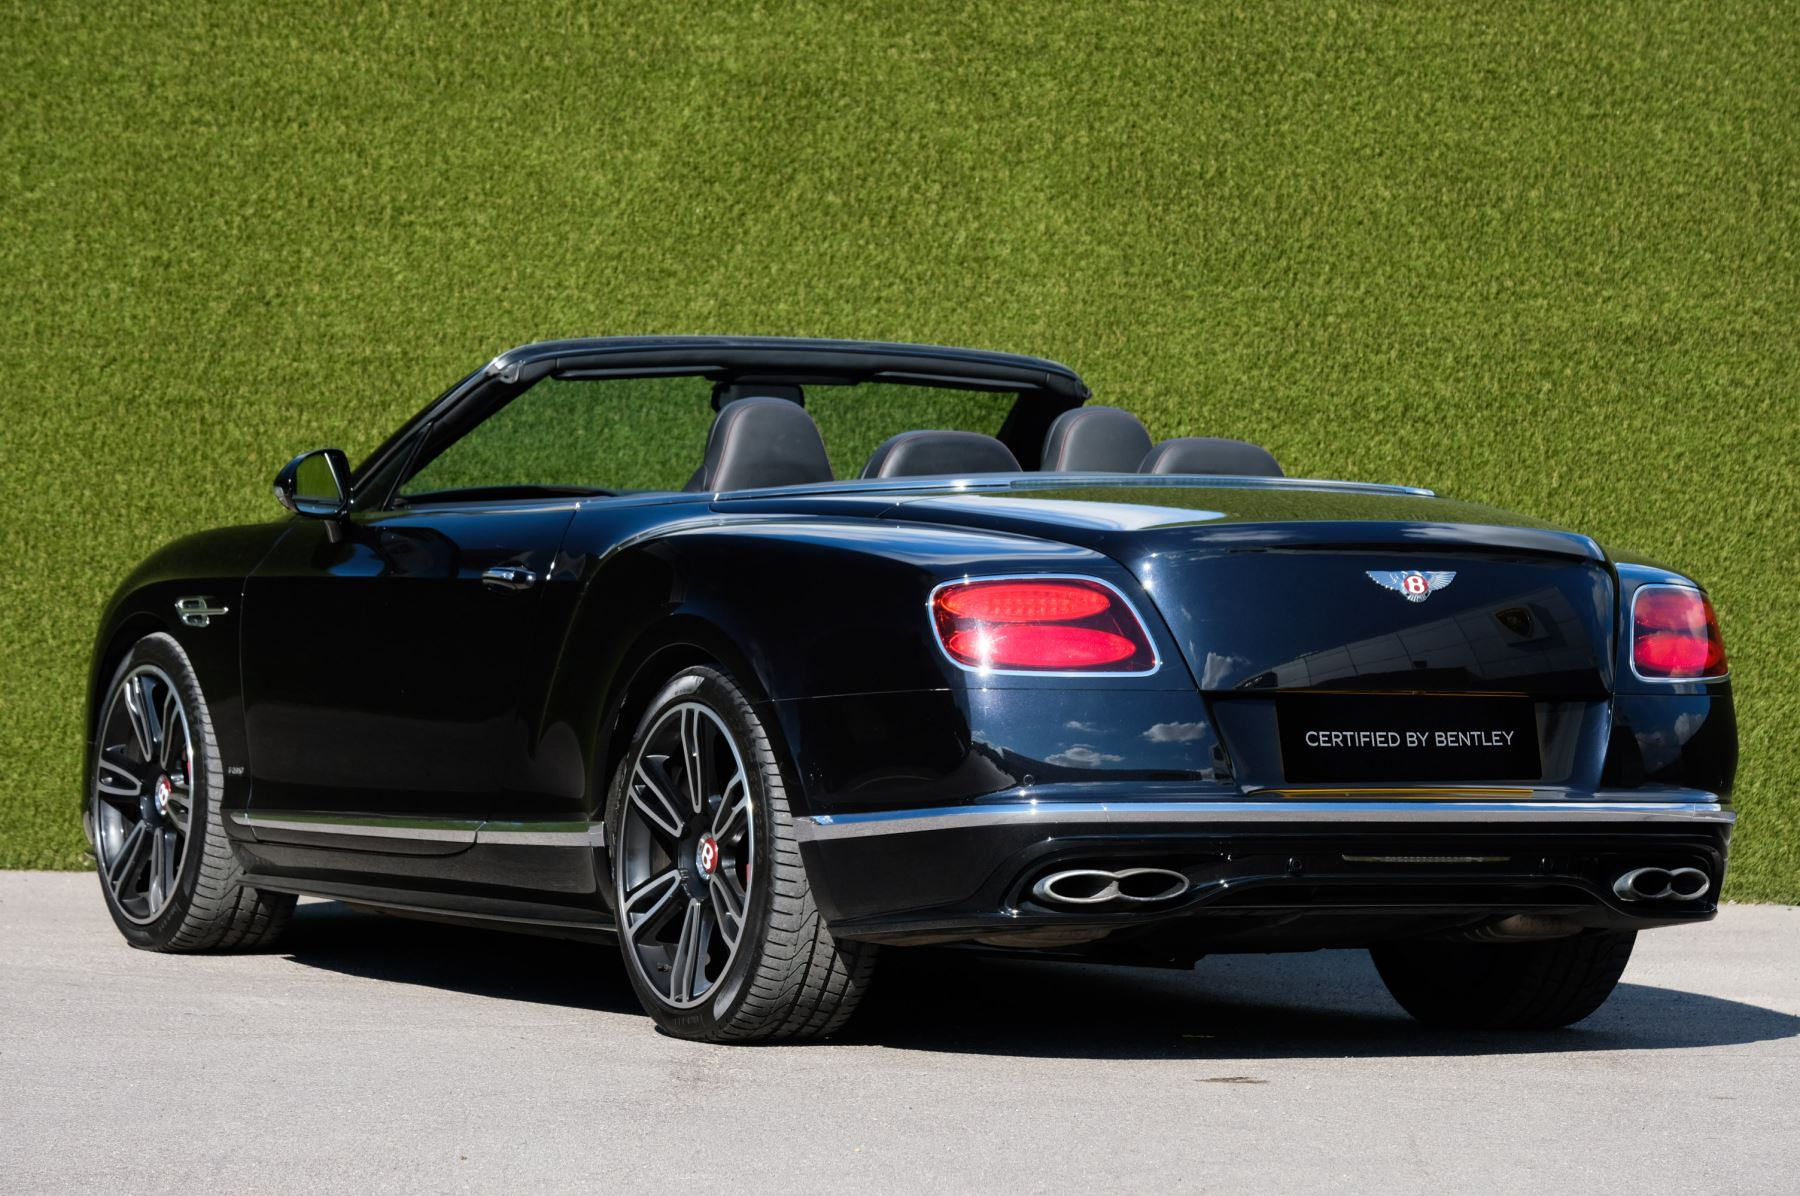 Bentley Continental GTC 4.0 V8 S - Mulliner Driving Spec - Sports Exhaust image 5